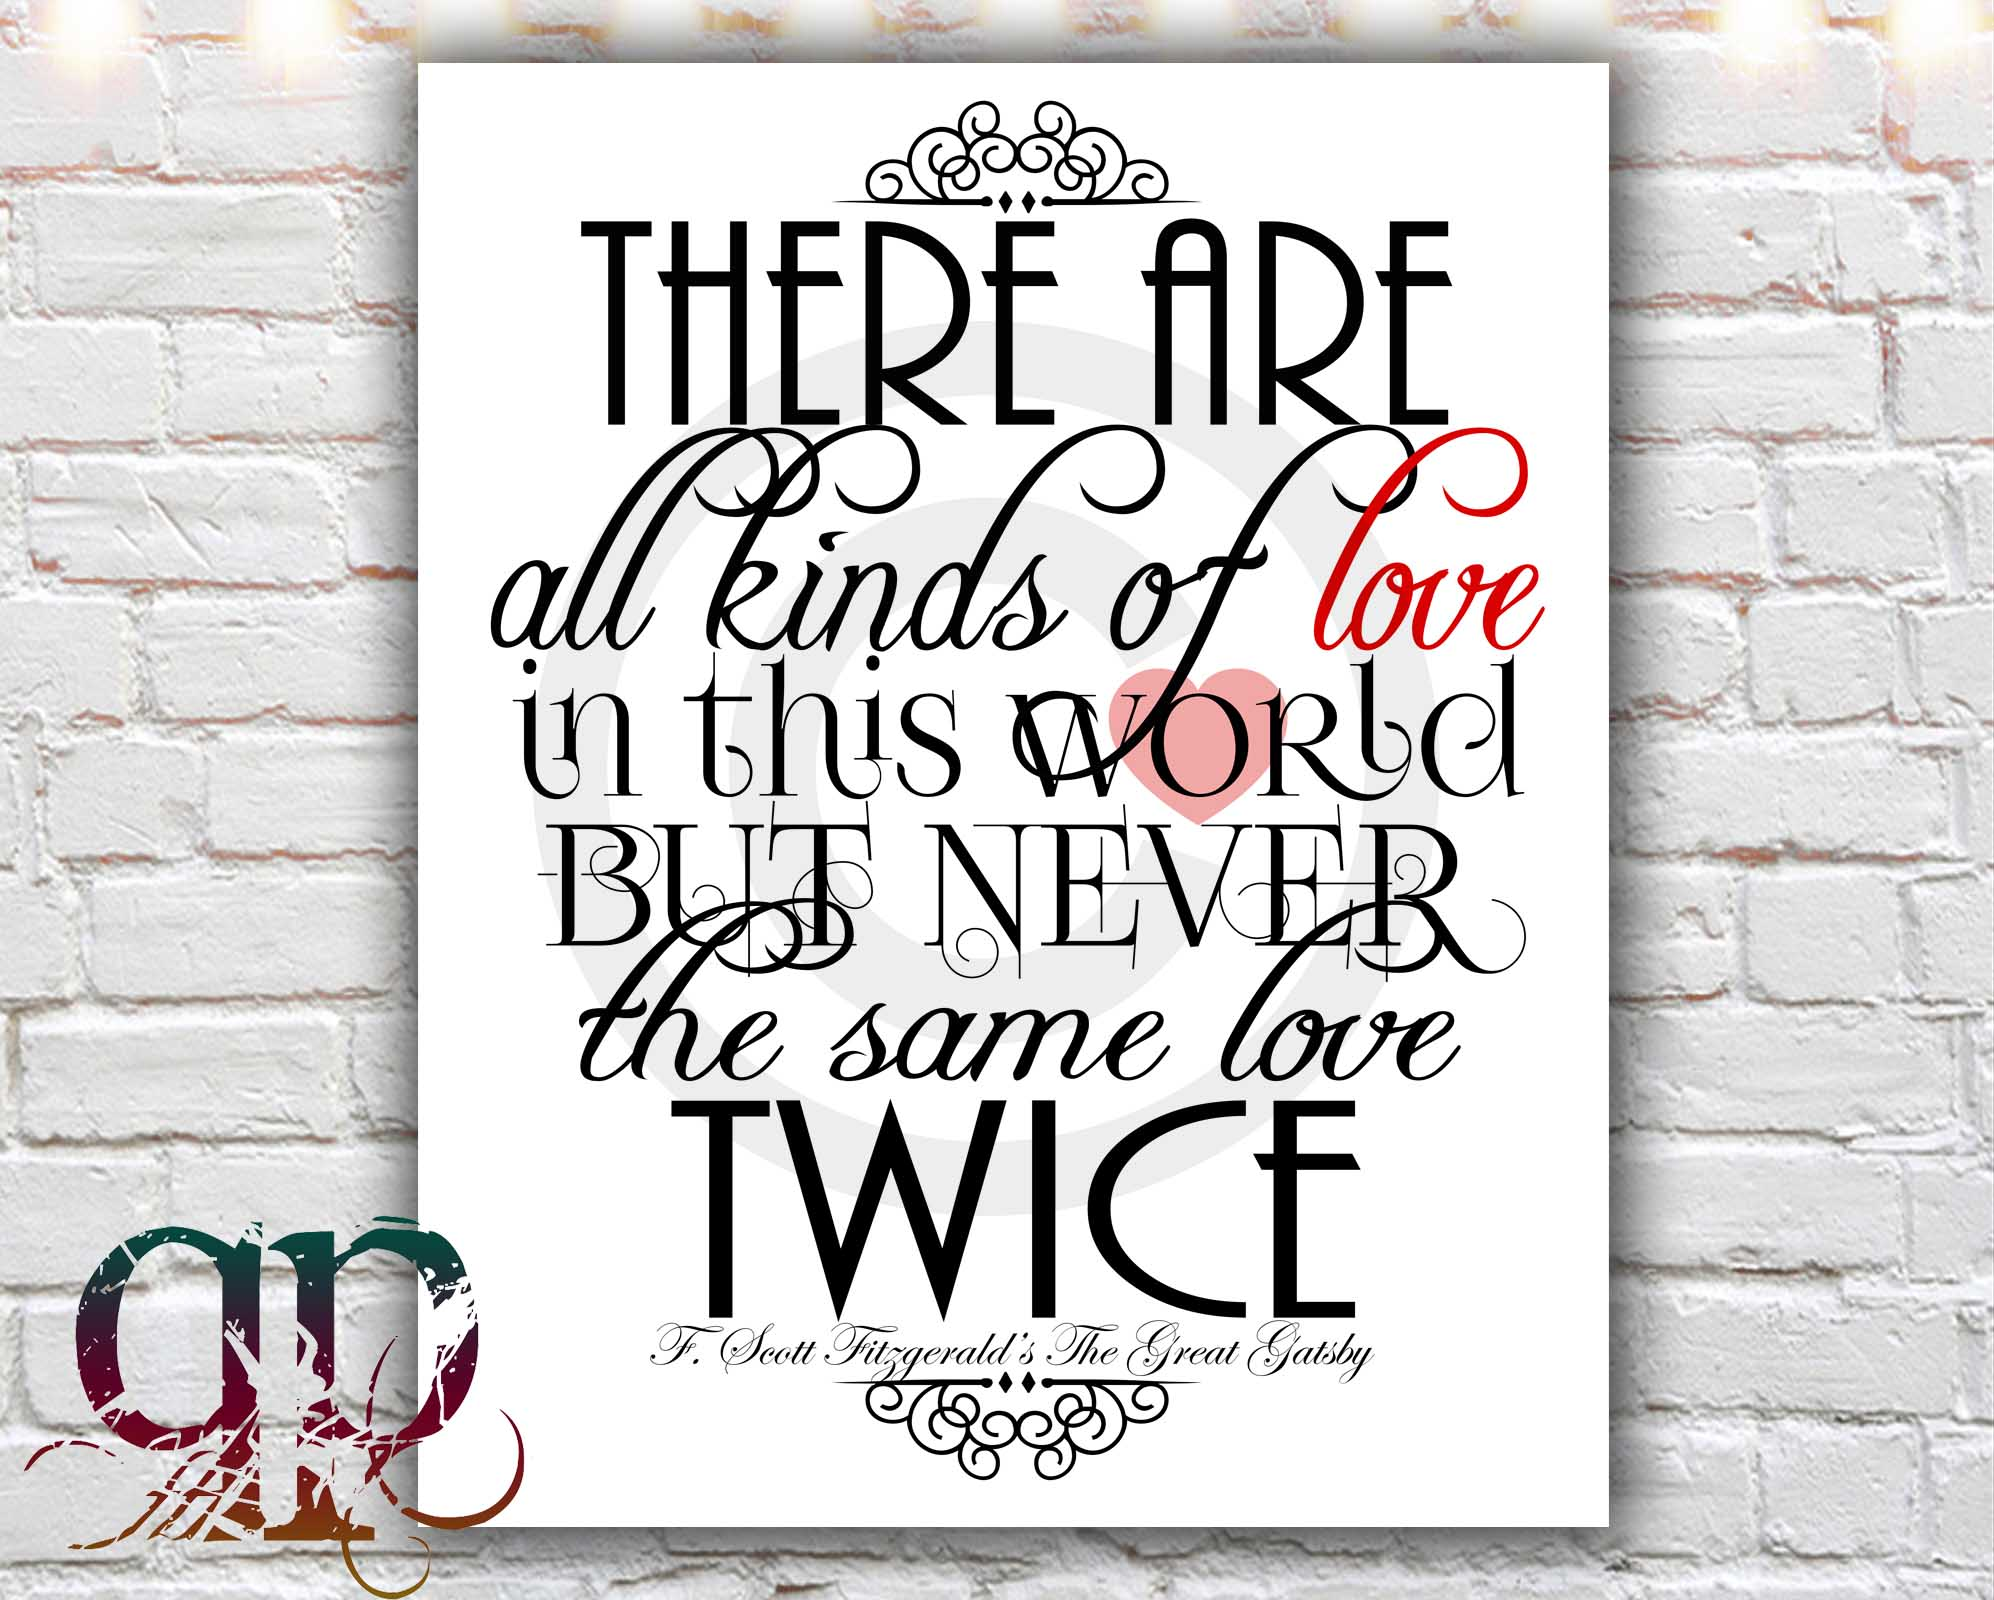 Quotes From The Great Gatsby The Same Love Twice  8 X 10 Paper Print Love Quote The Great